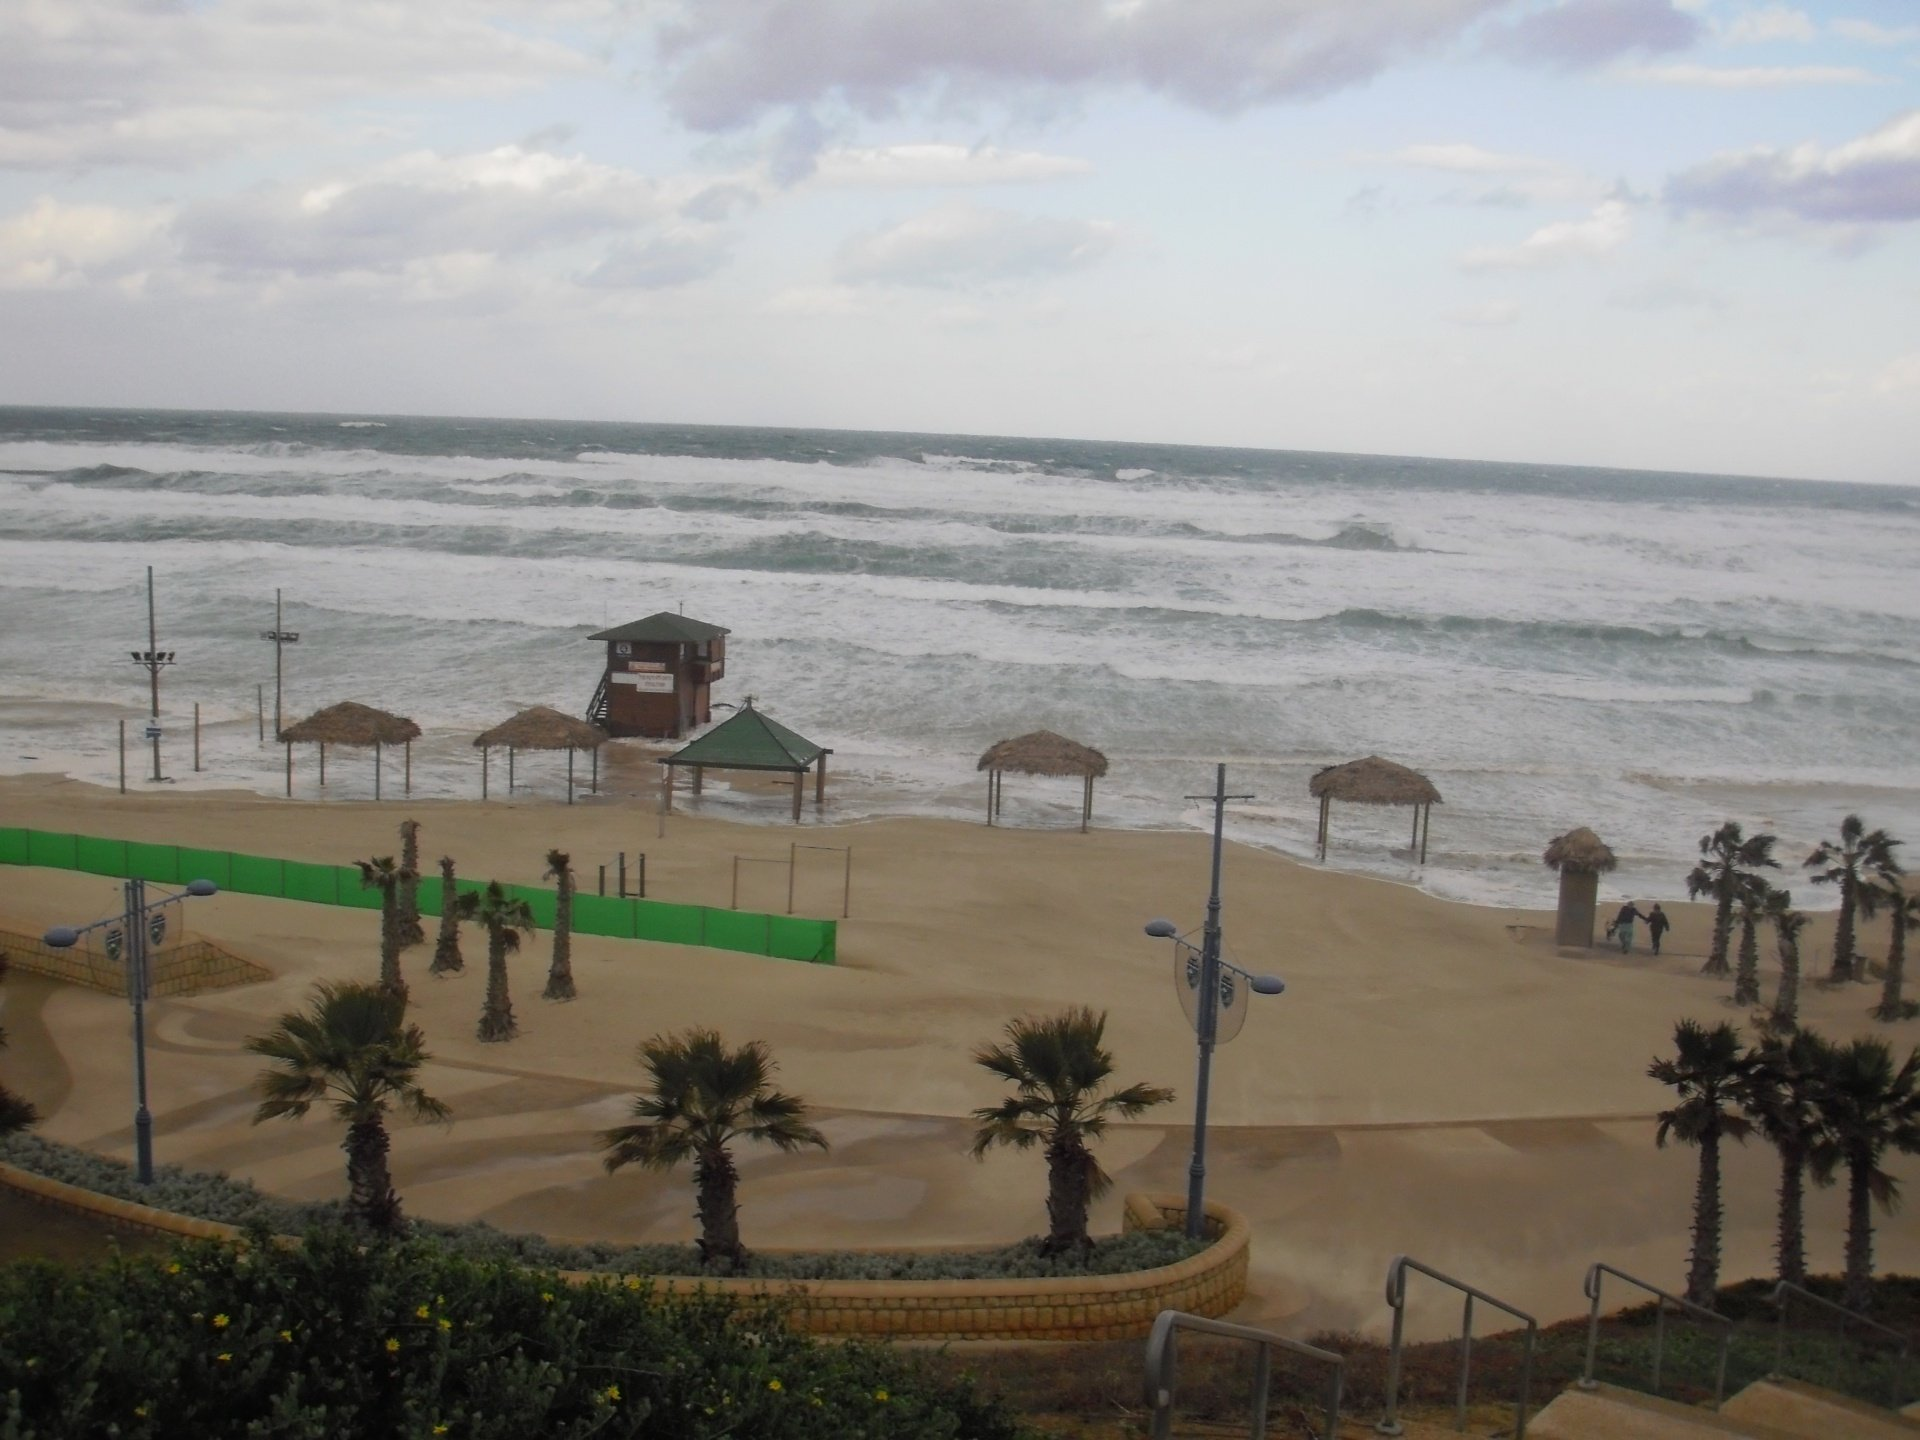 yosi's photo of Rishon Lezion